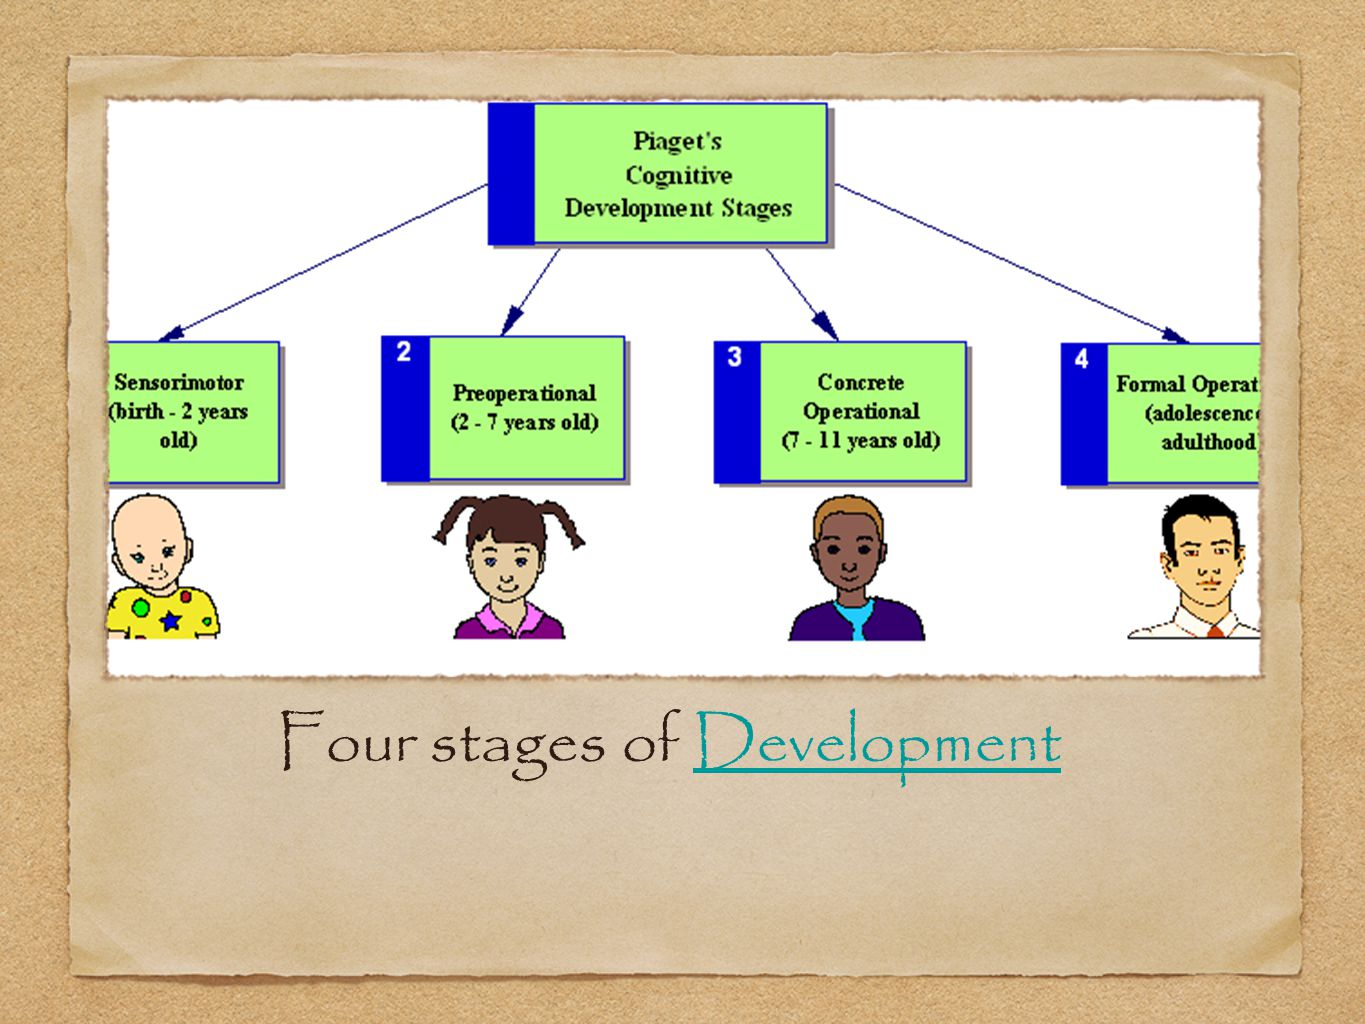 Four stages of DevelopmentDevelopment